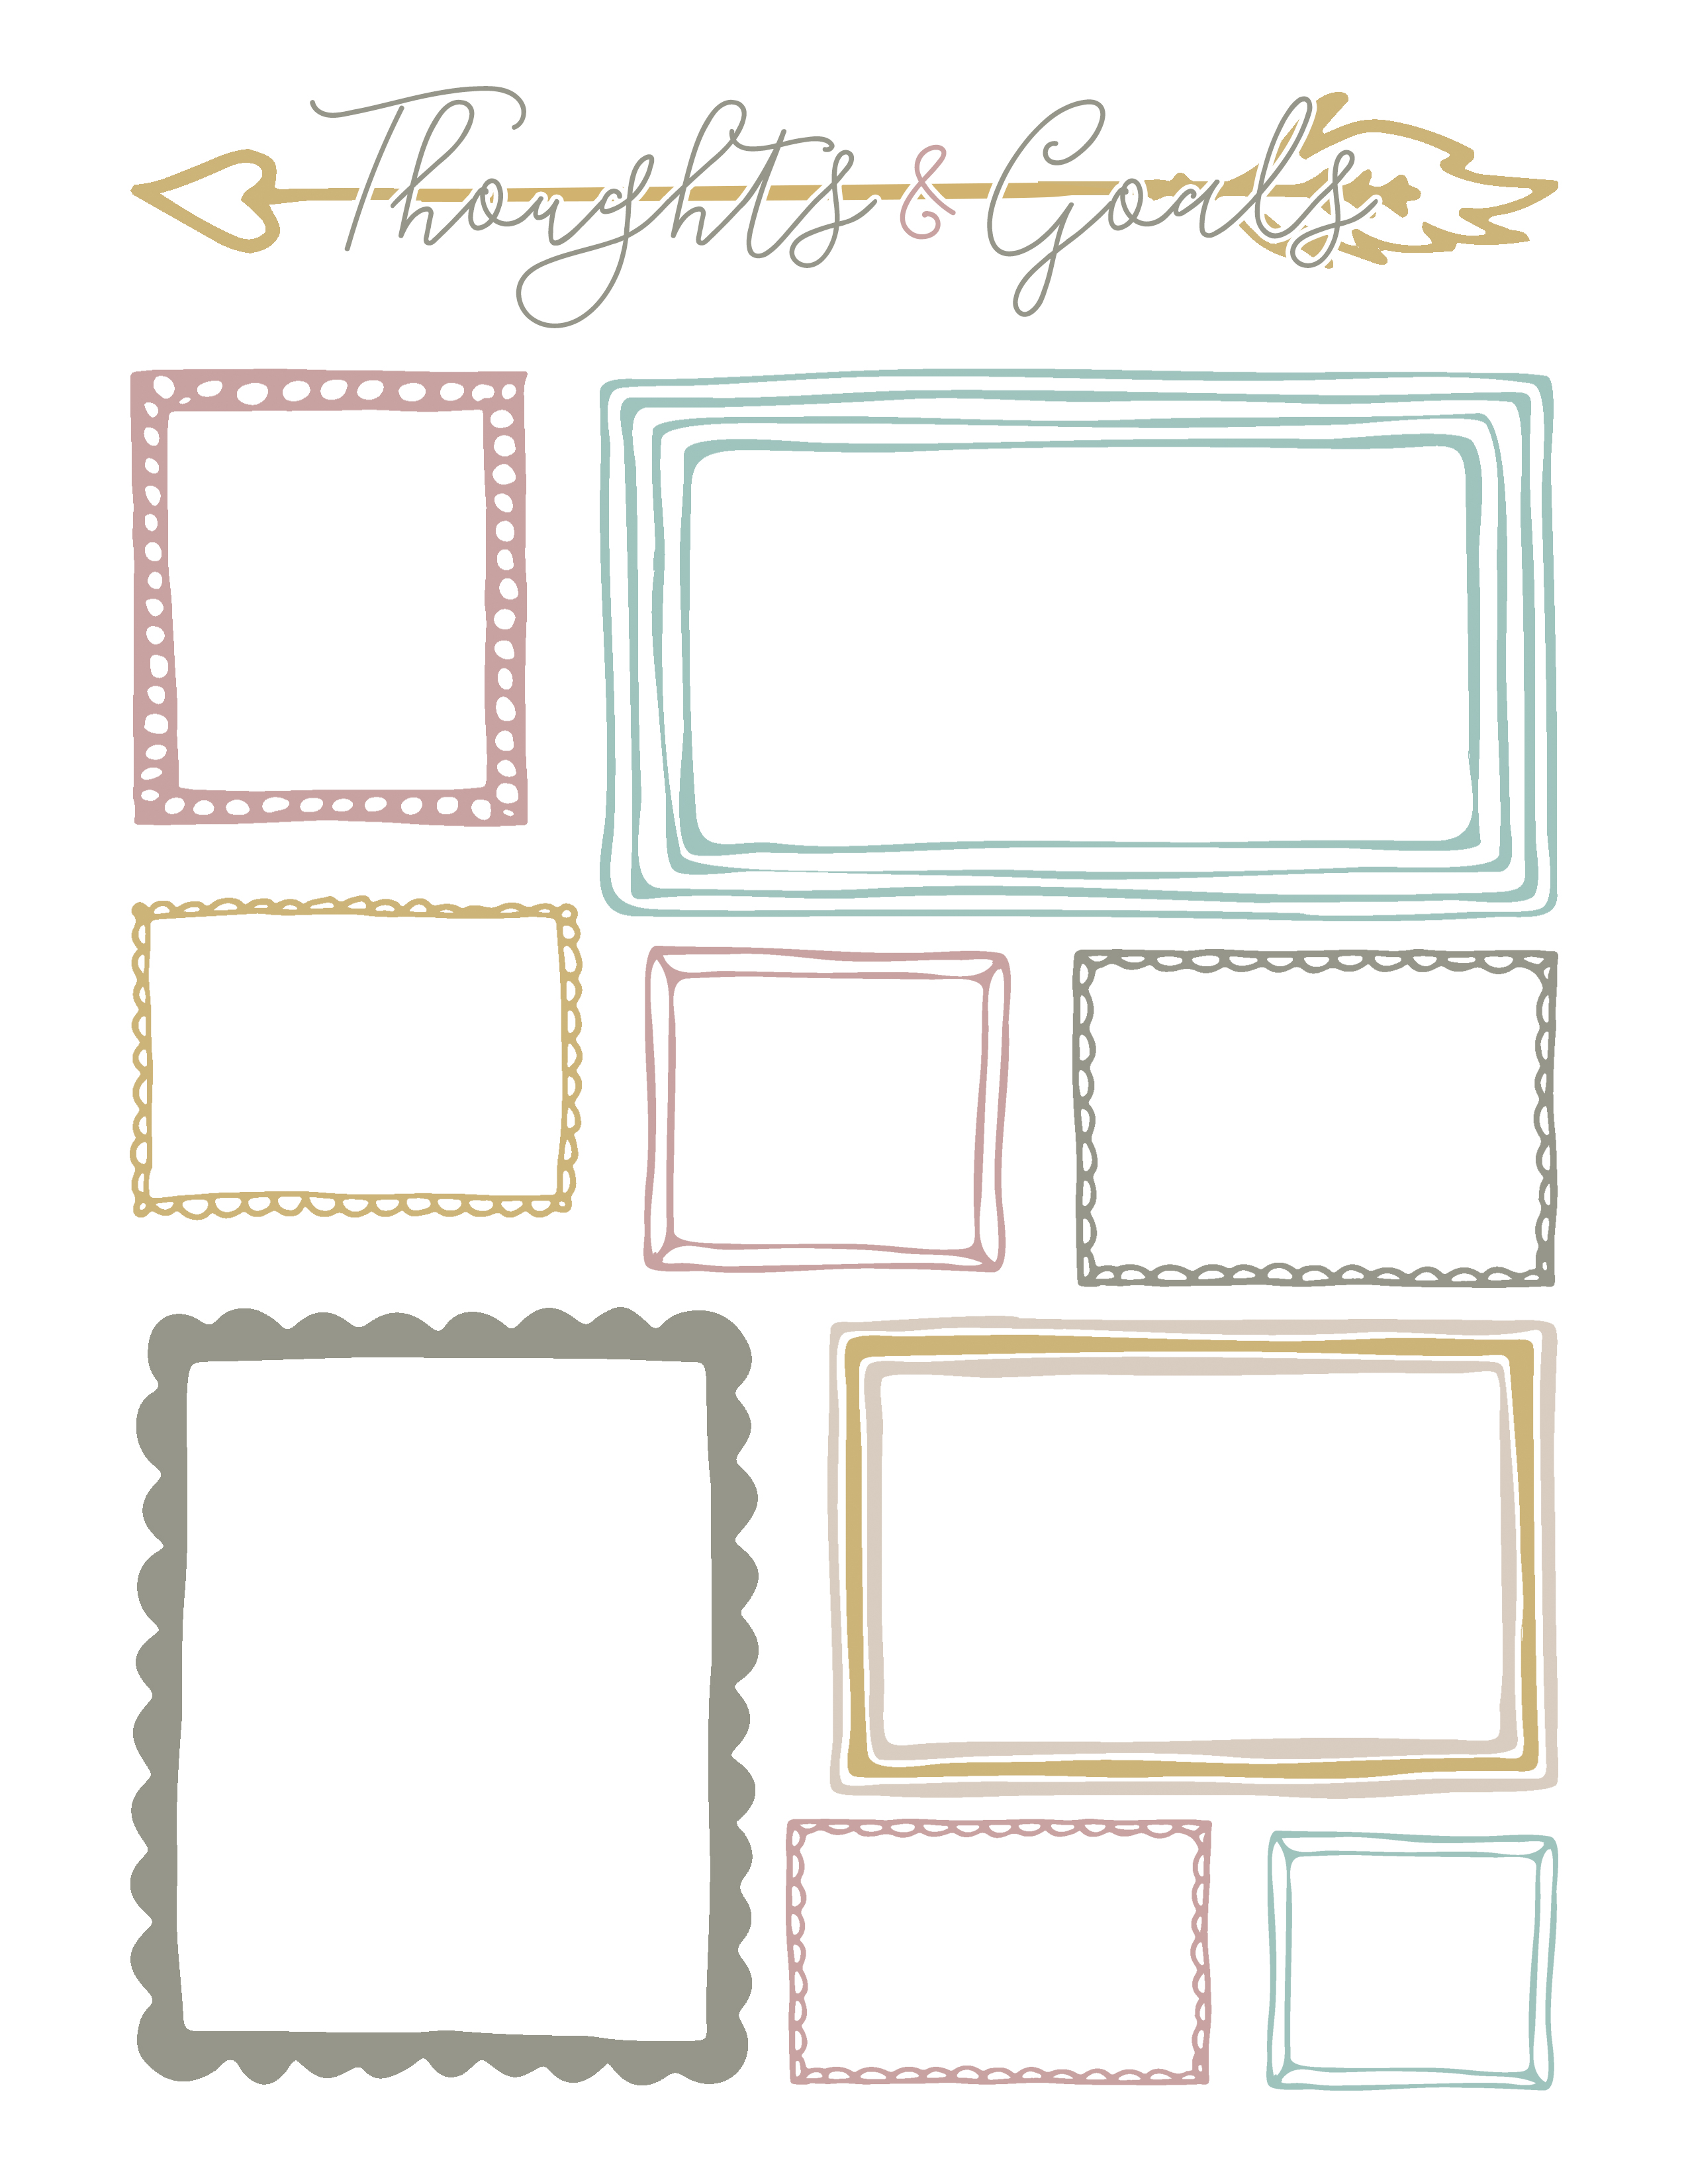 Free Weight Loss Planner Printable | The Cottage Market